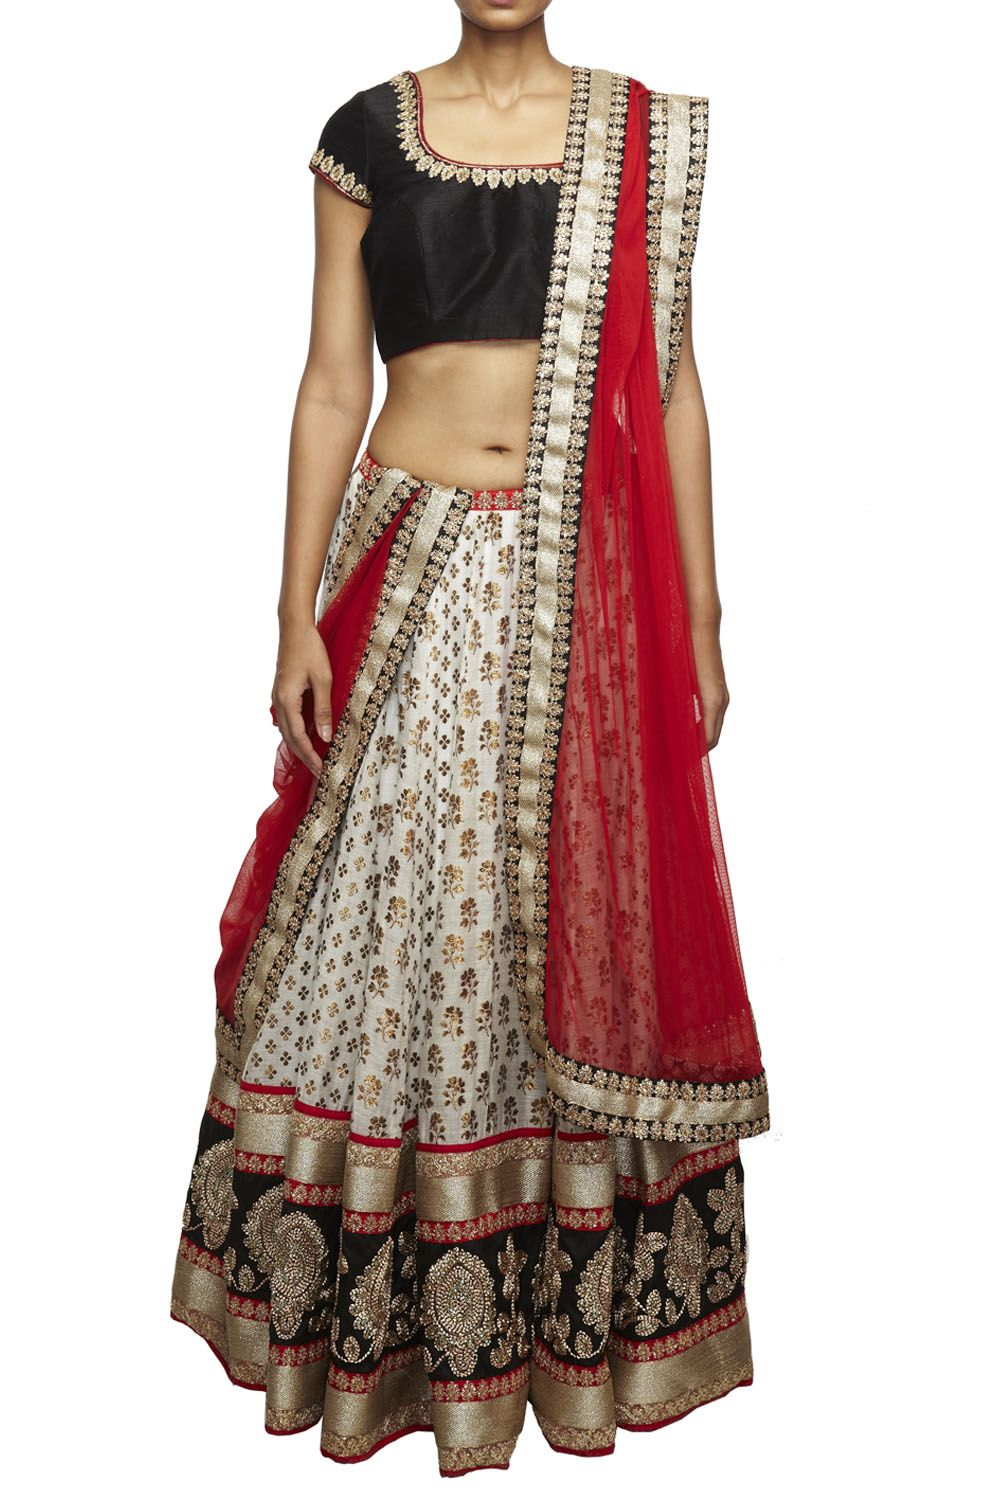 2ab54a0c08 Off-white brocade lehenga with gold motifs and a hand-embroidered border,  black